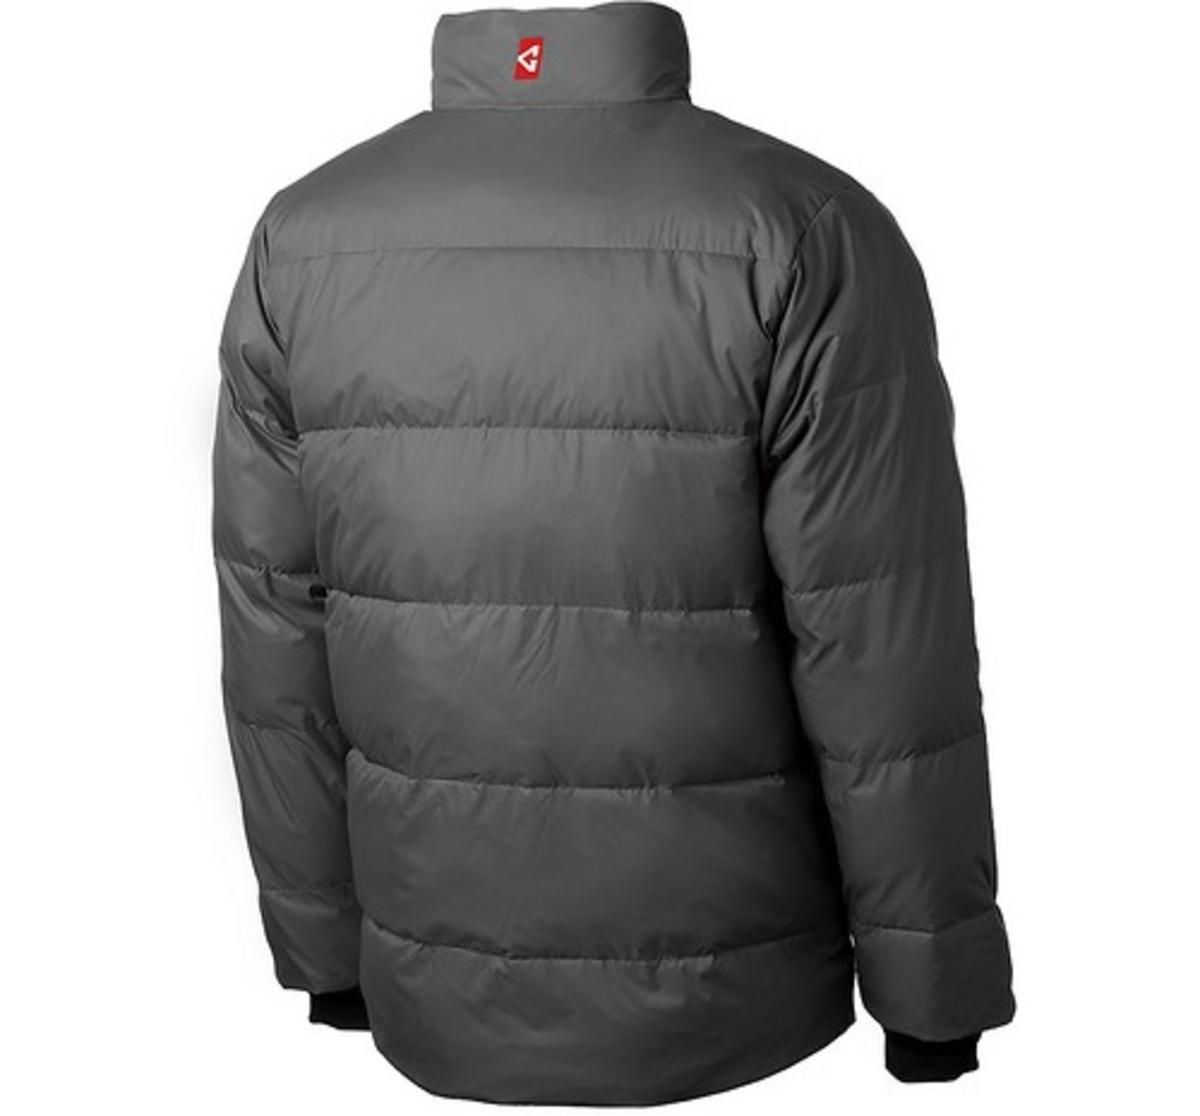 Gerbing Battery Heated Puffer Jacket For Men 7v Battery The